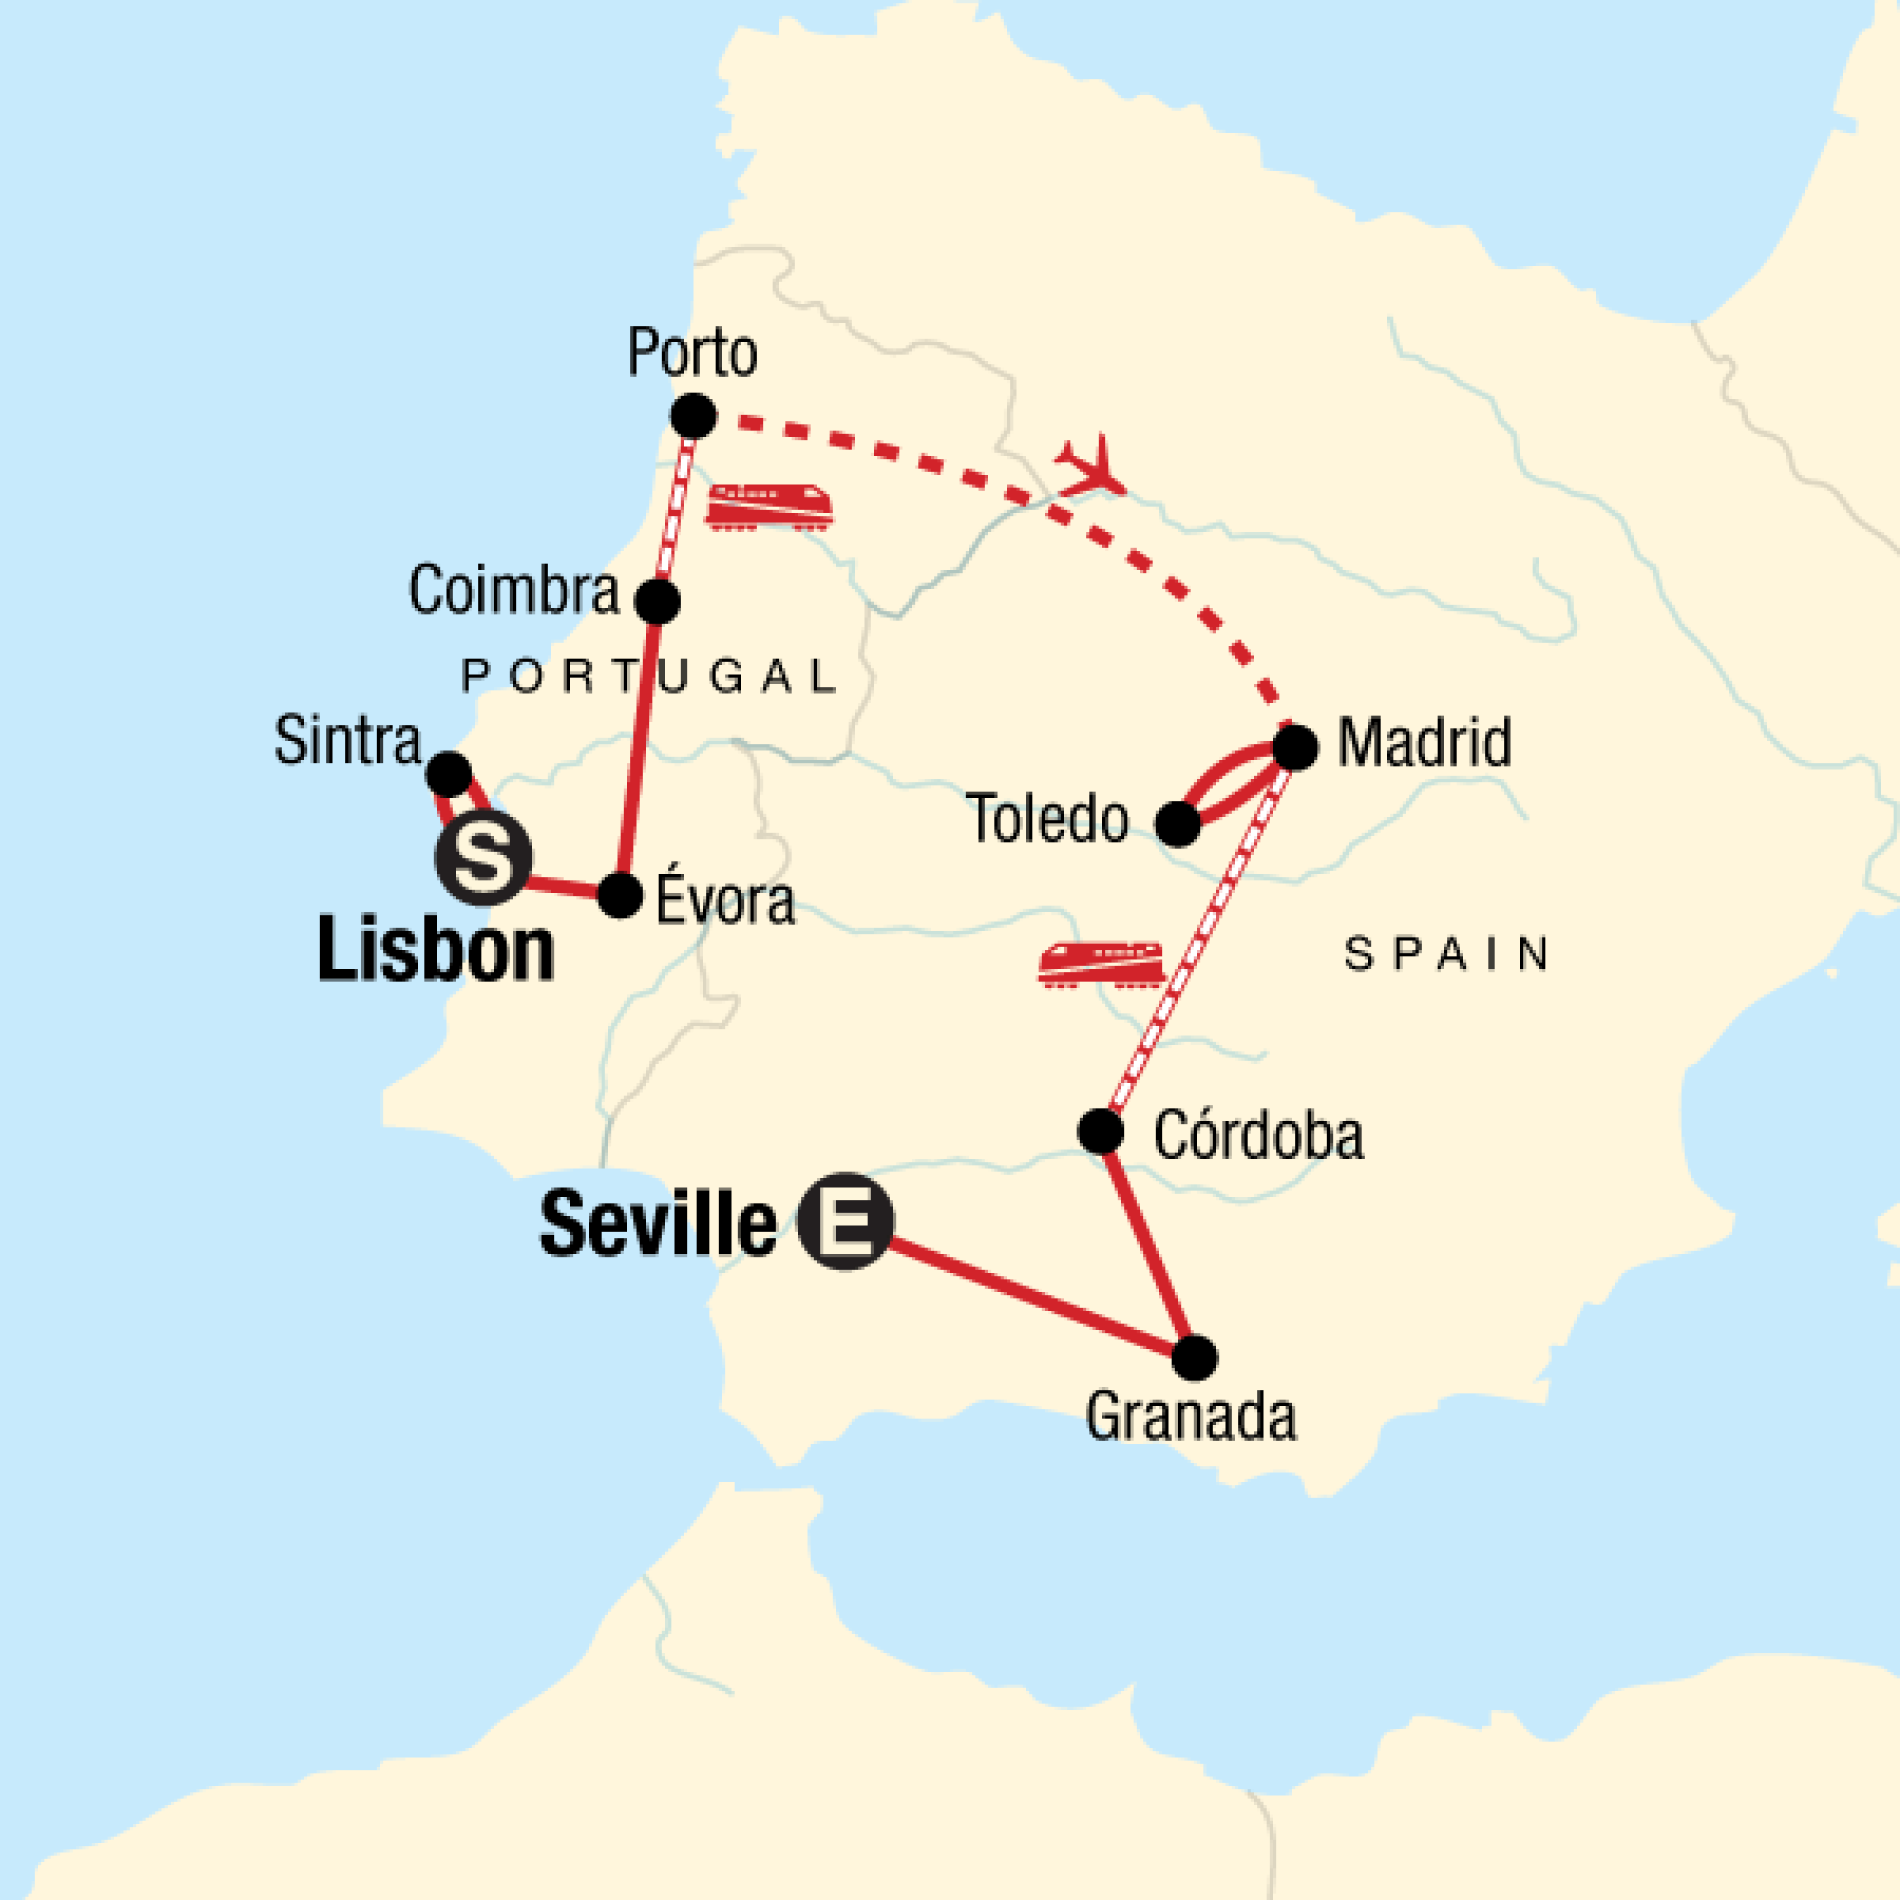 trip_detail expedition map image